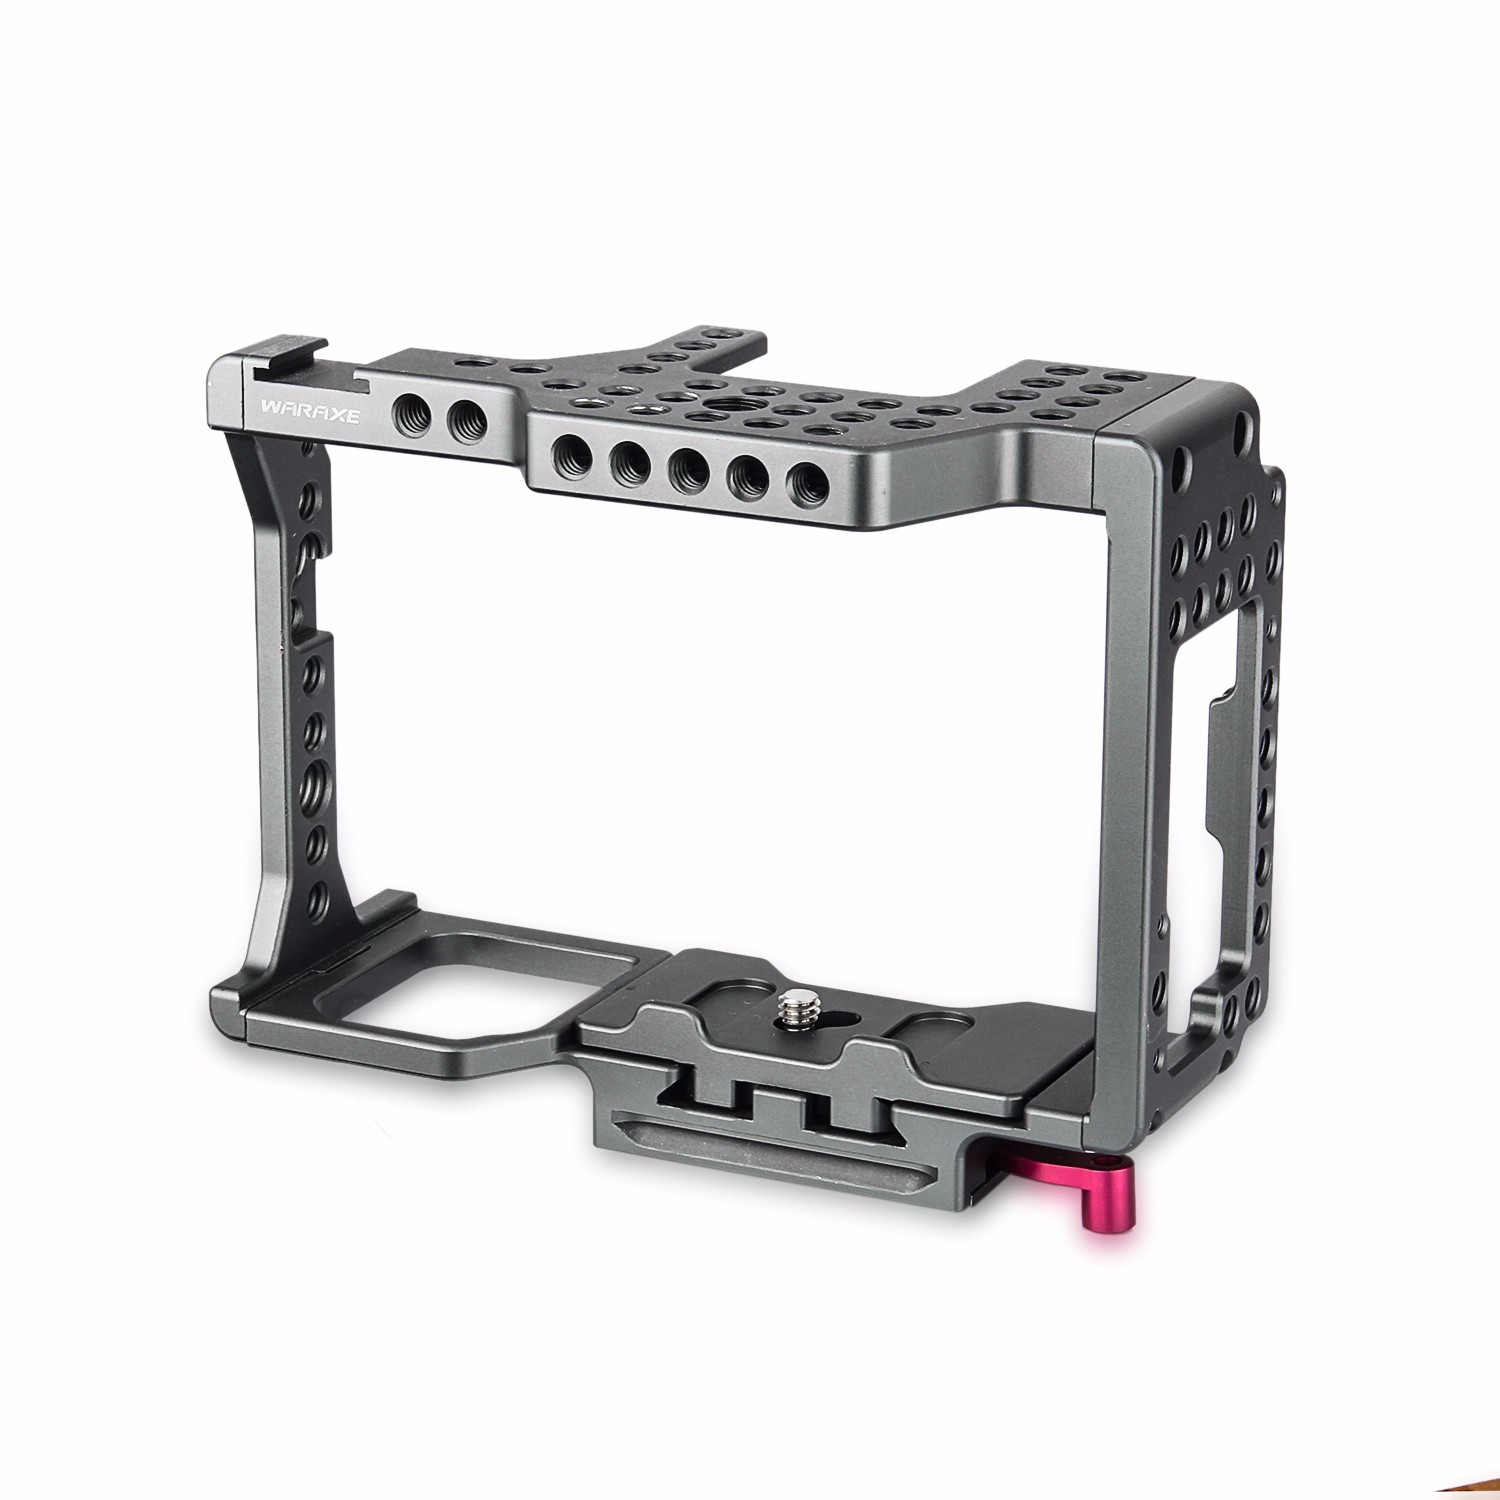 WARAXE A7 Camera Cage Built-in Quick Release Fits Arca Swiss for Sony A7 A7R A7S A7 II A7R II A7S II Threaded Holes цены